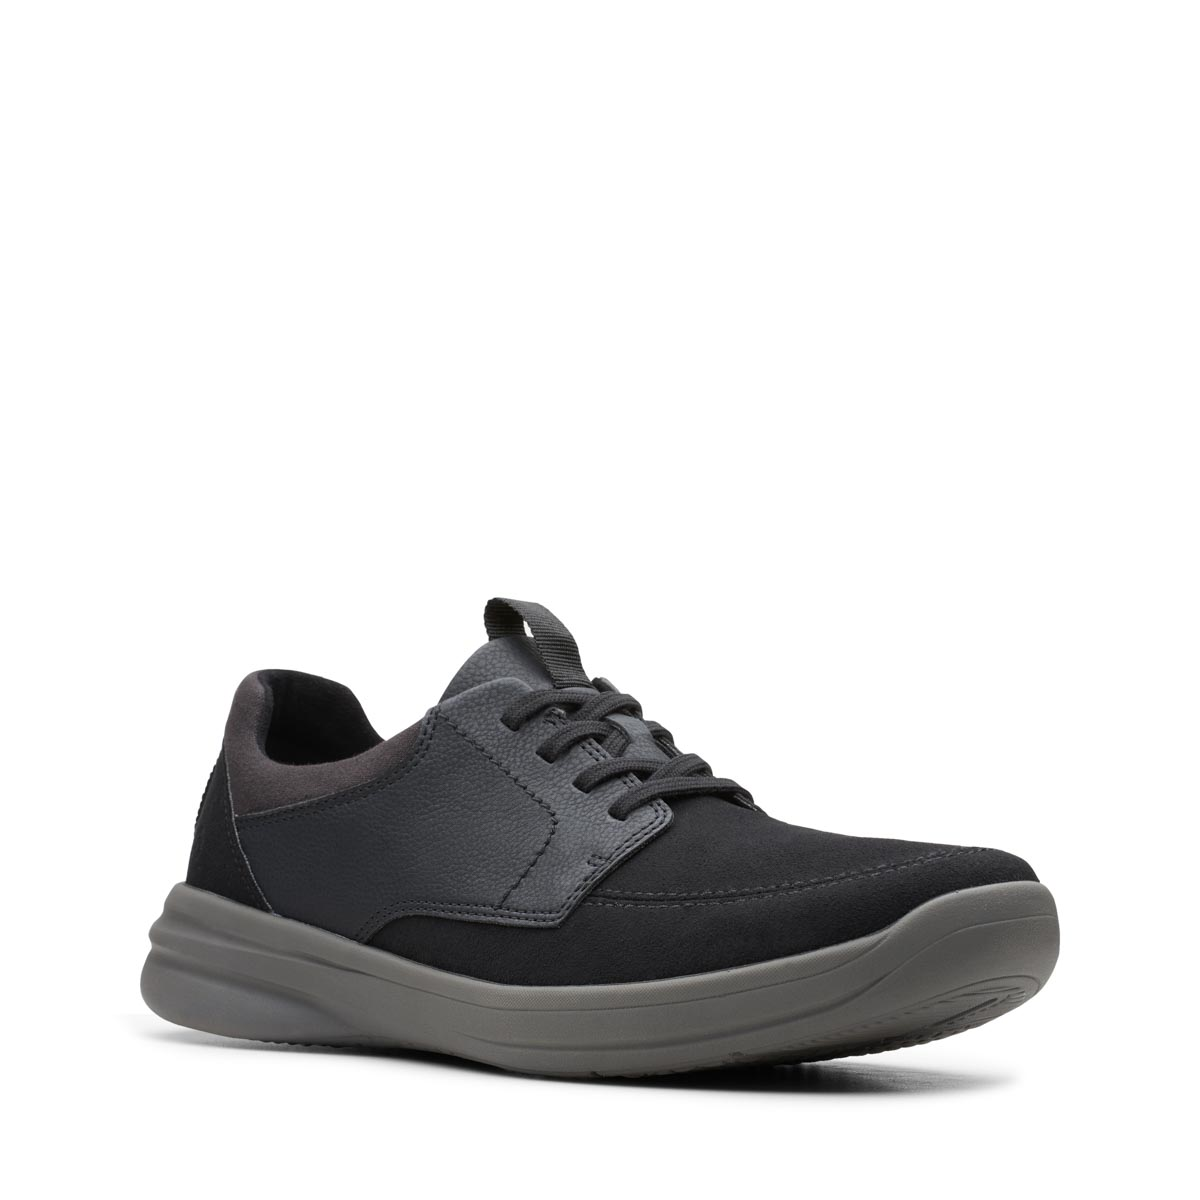 Fit Black leather casual shoes